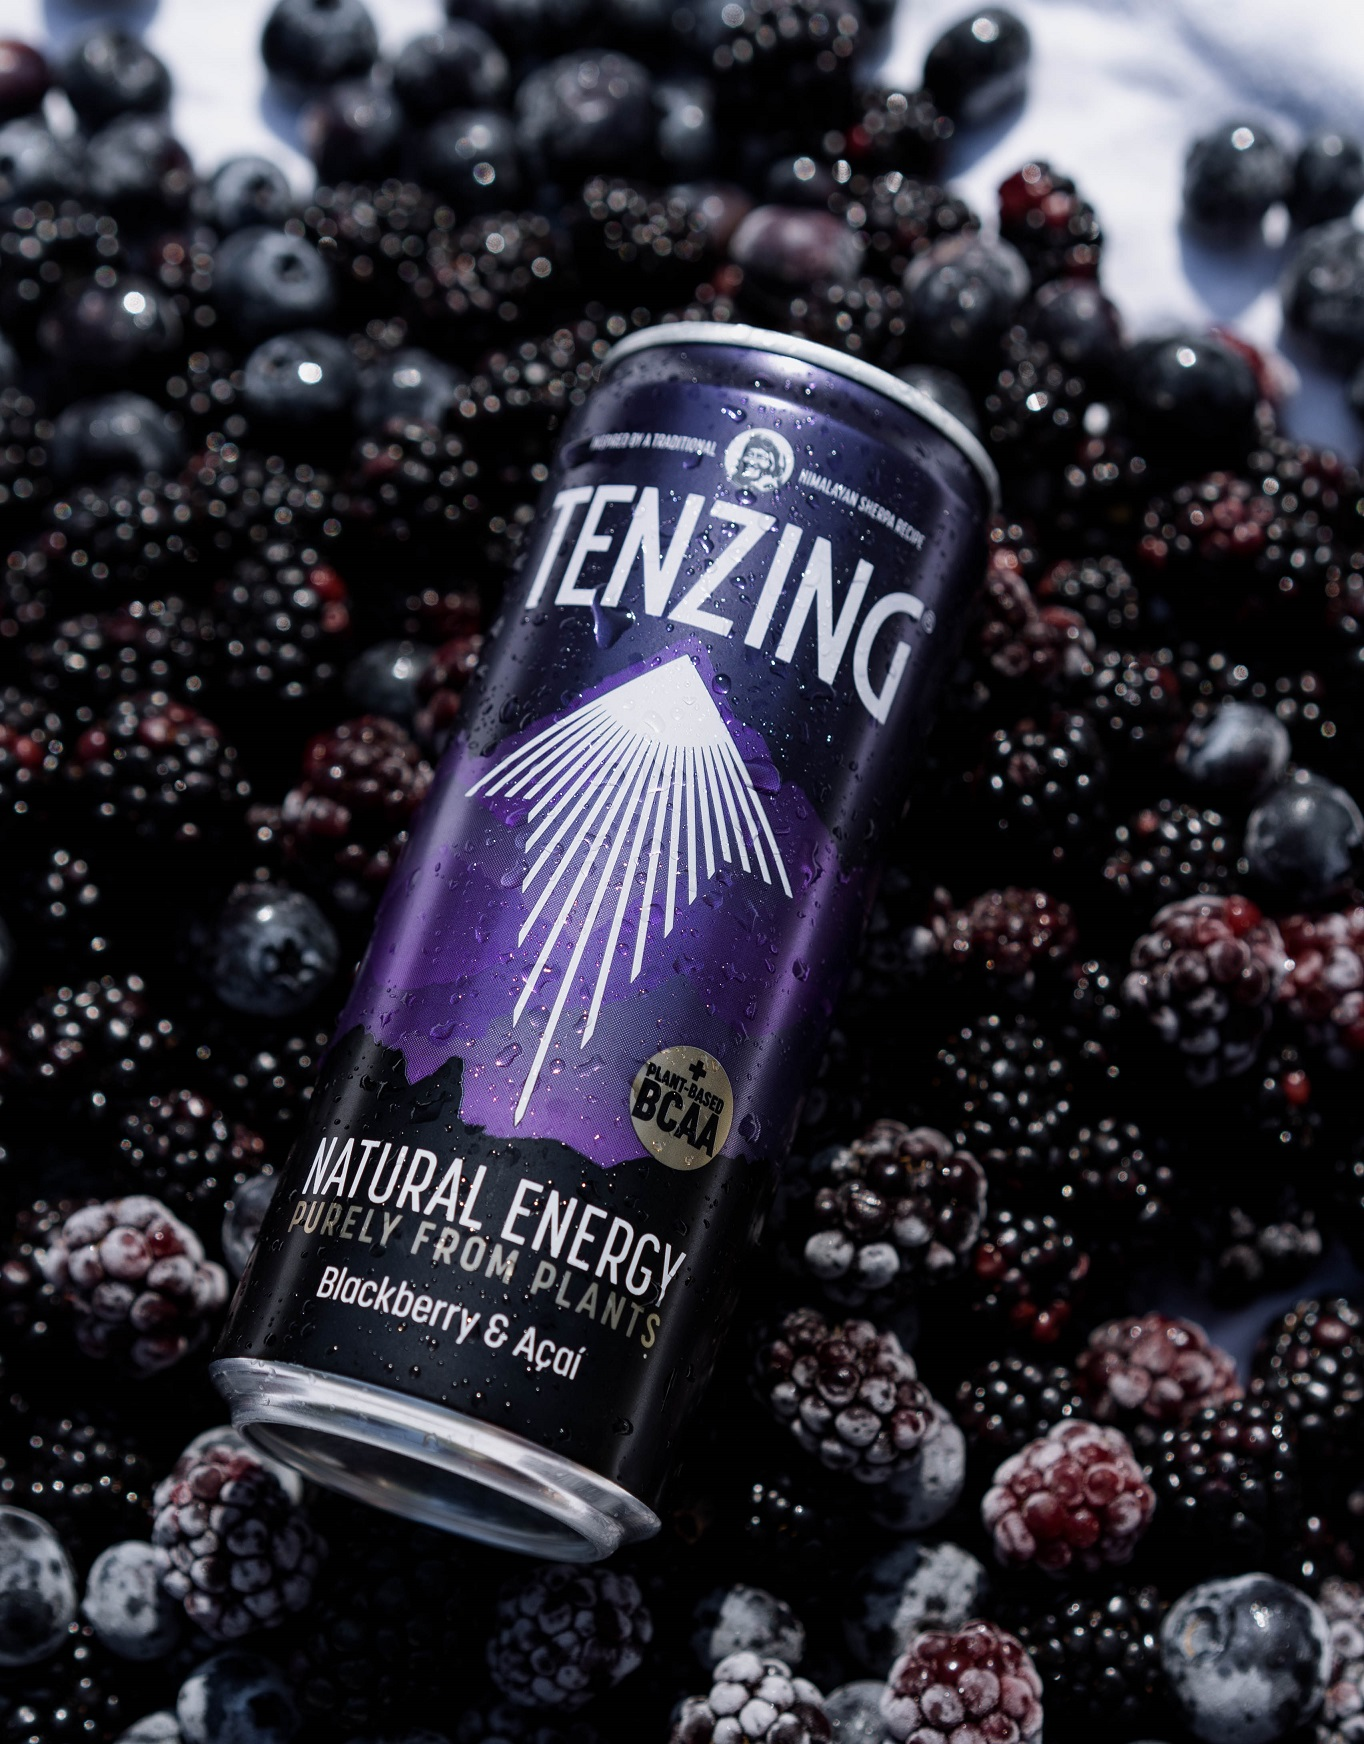 Tenzing Natural Energy Launches Their Most Powerful Blend